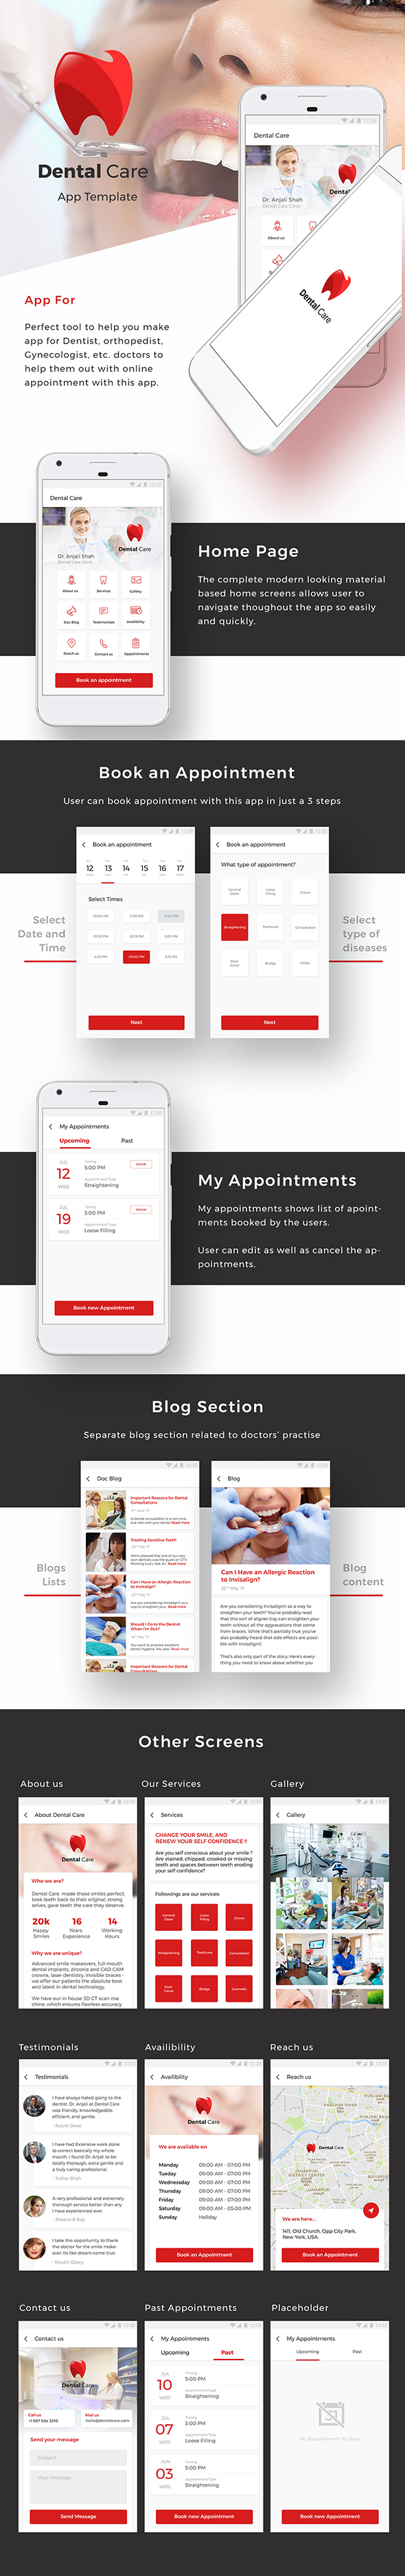 Dentist and other Doctors Appointment booking Android and iOS App Template | IONIC 3 - 2